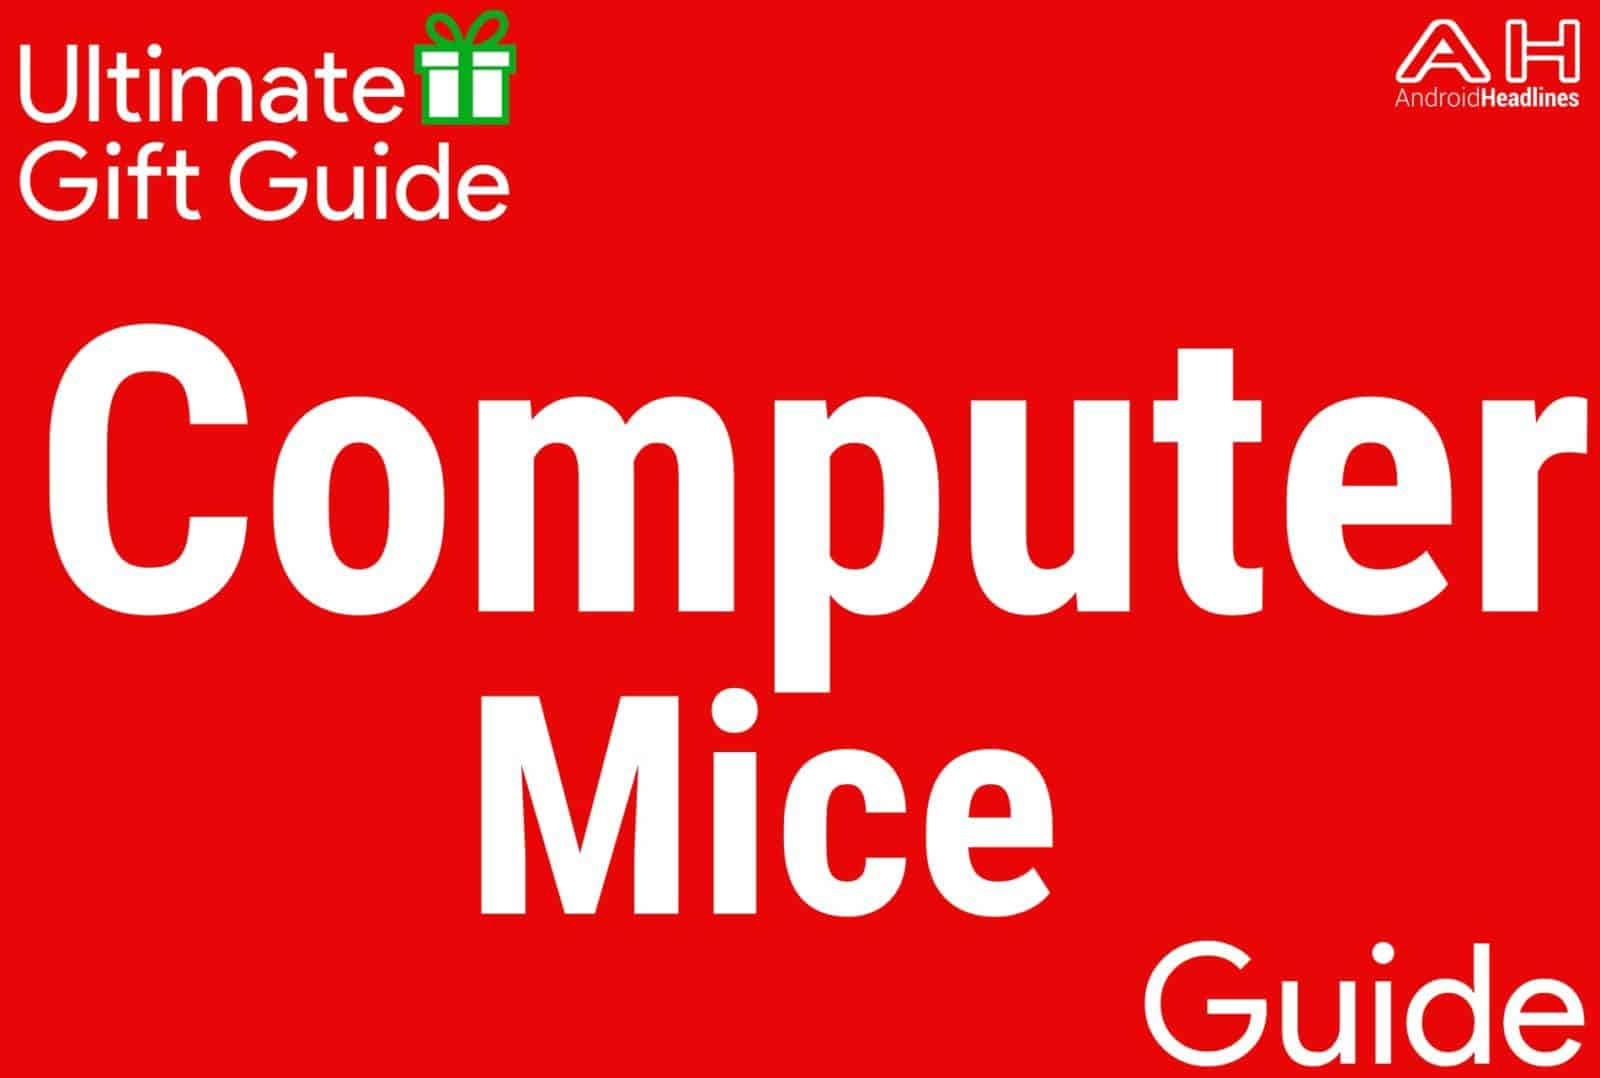 Computer Mice - Gift Guide 2015